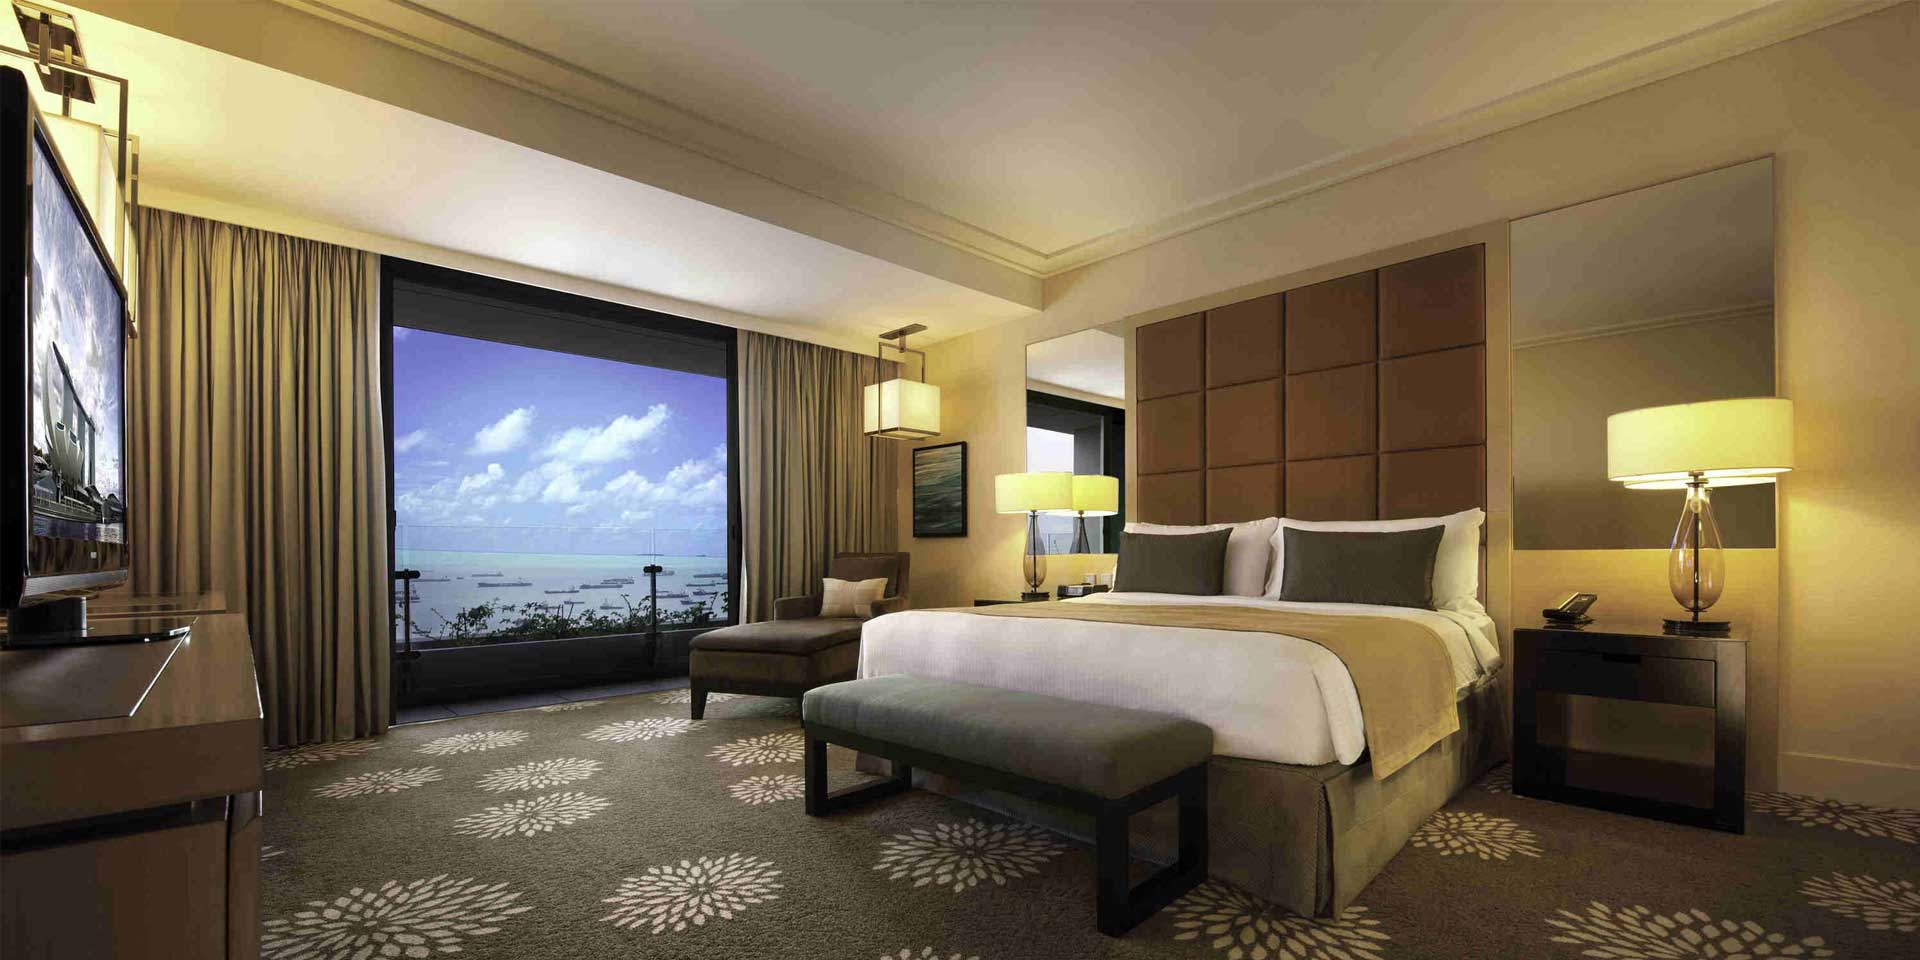 Https Www Marinabaysands Com Hotel Rooms Suites Club Room Html